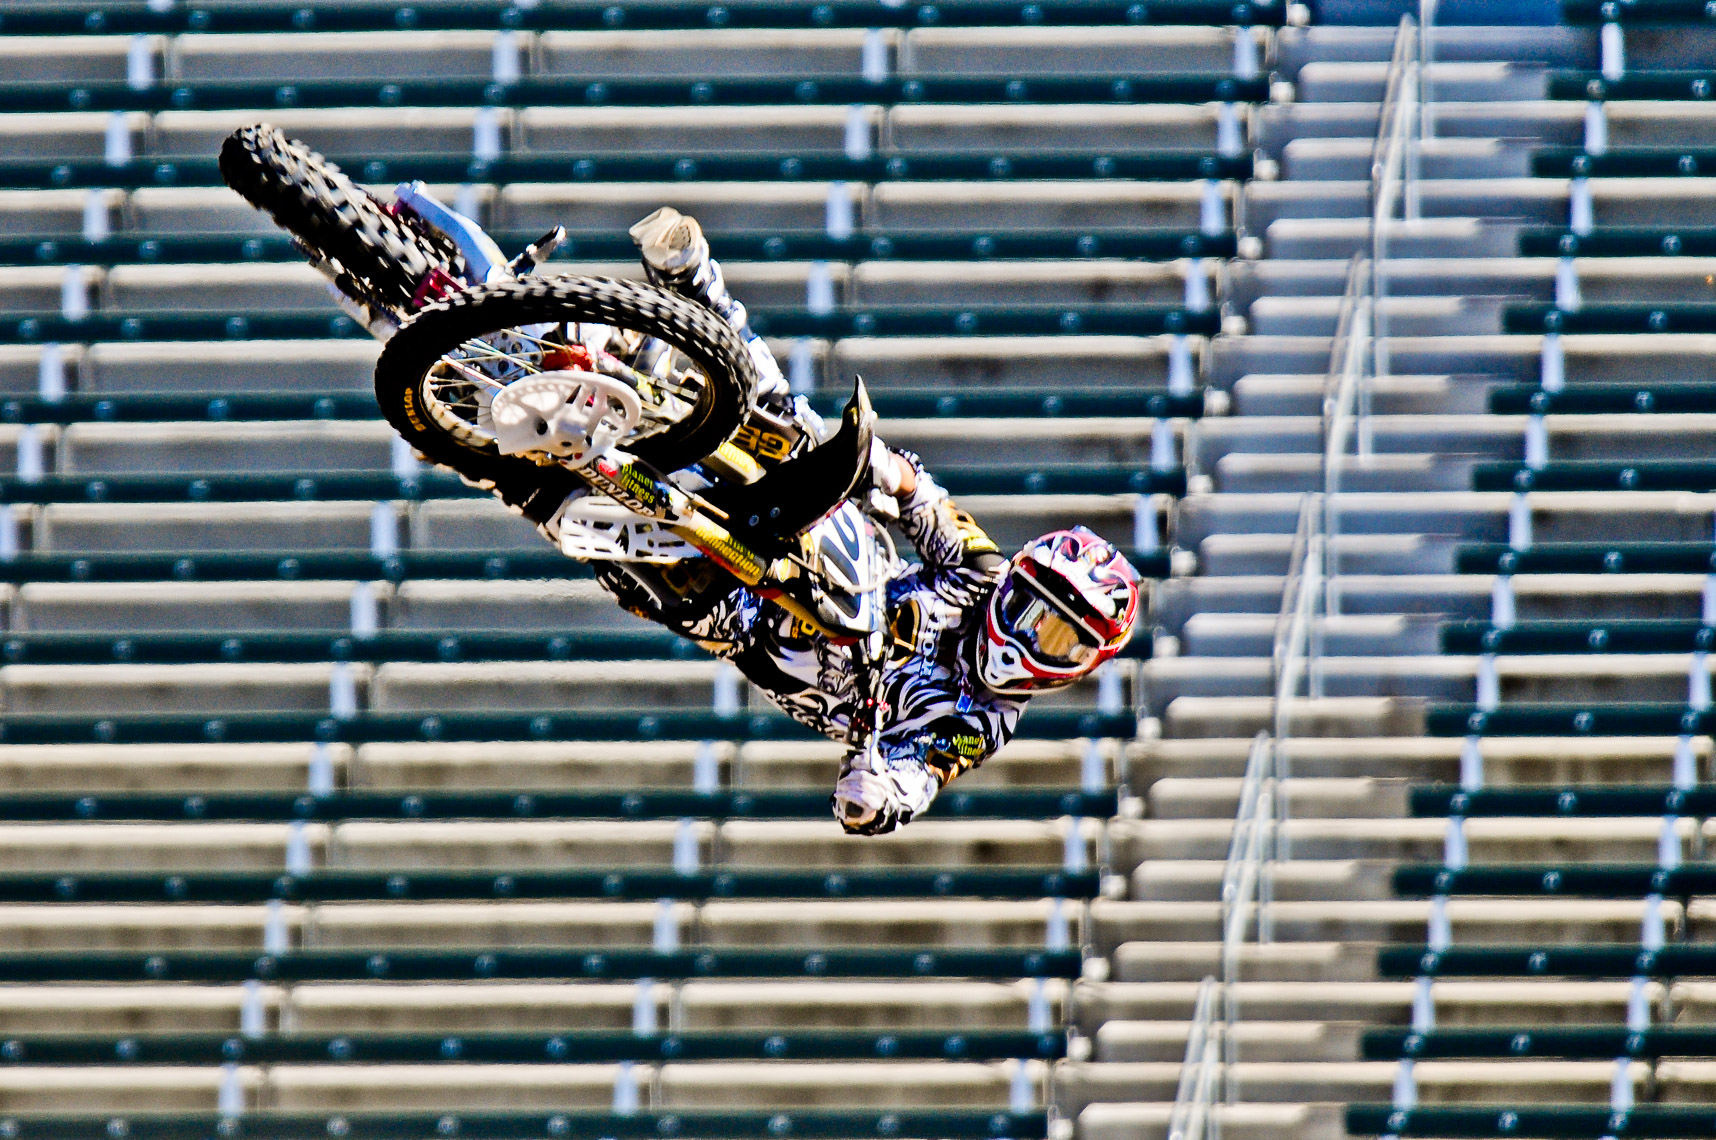 JFennell XGames Motocross Sports Photos